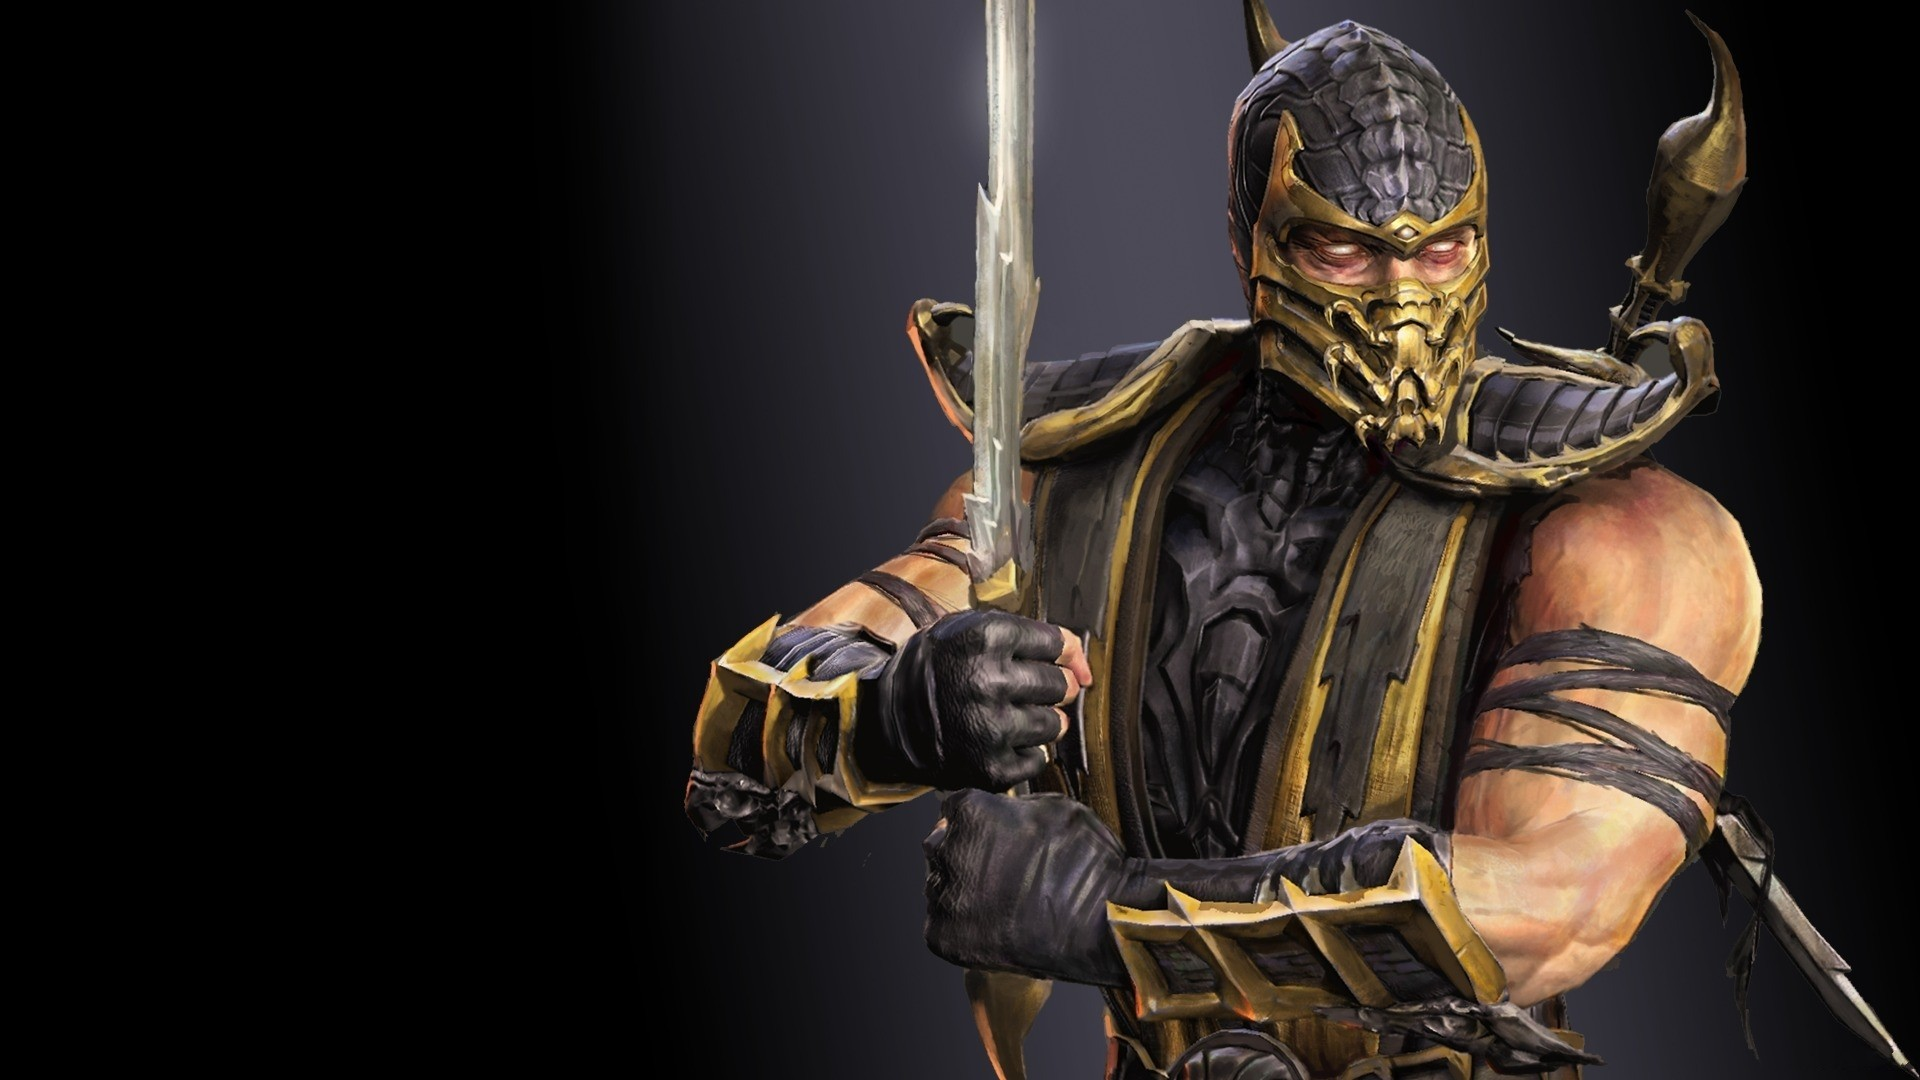 Scorpion Mortal Kombat HD